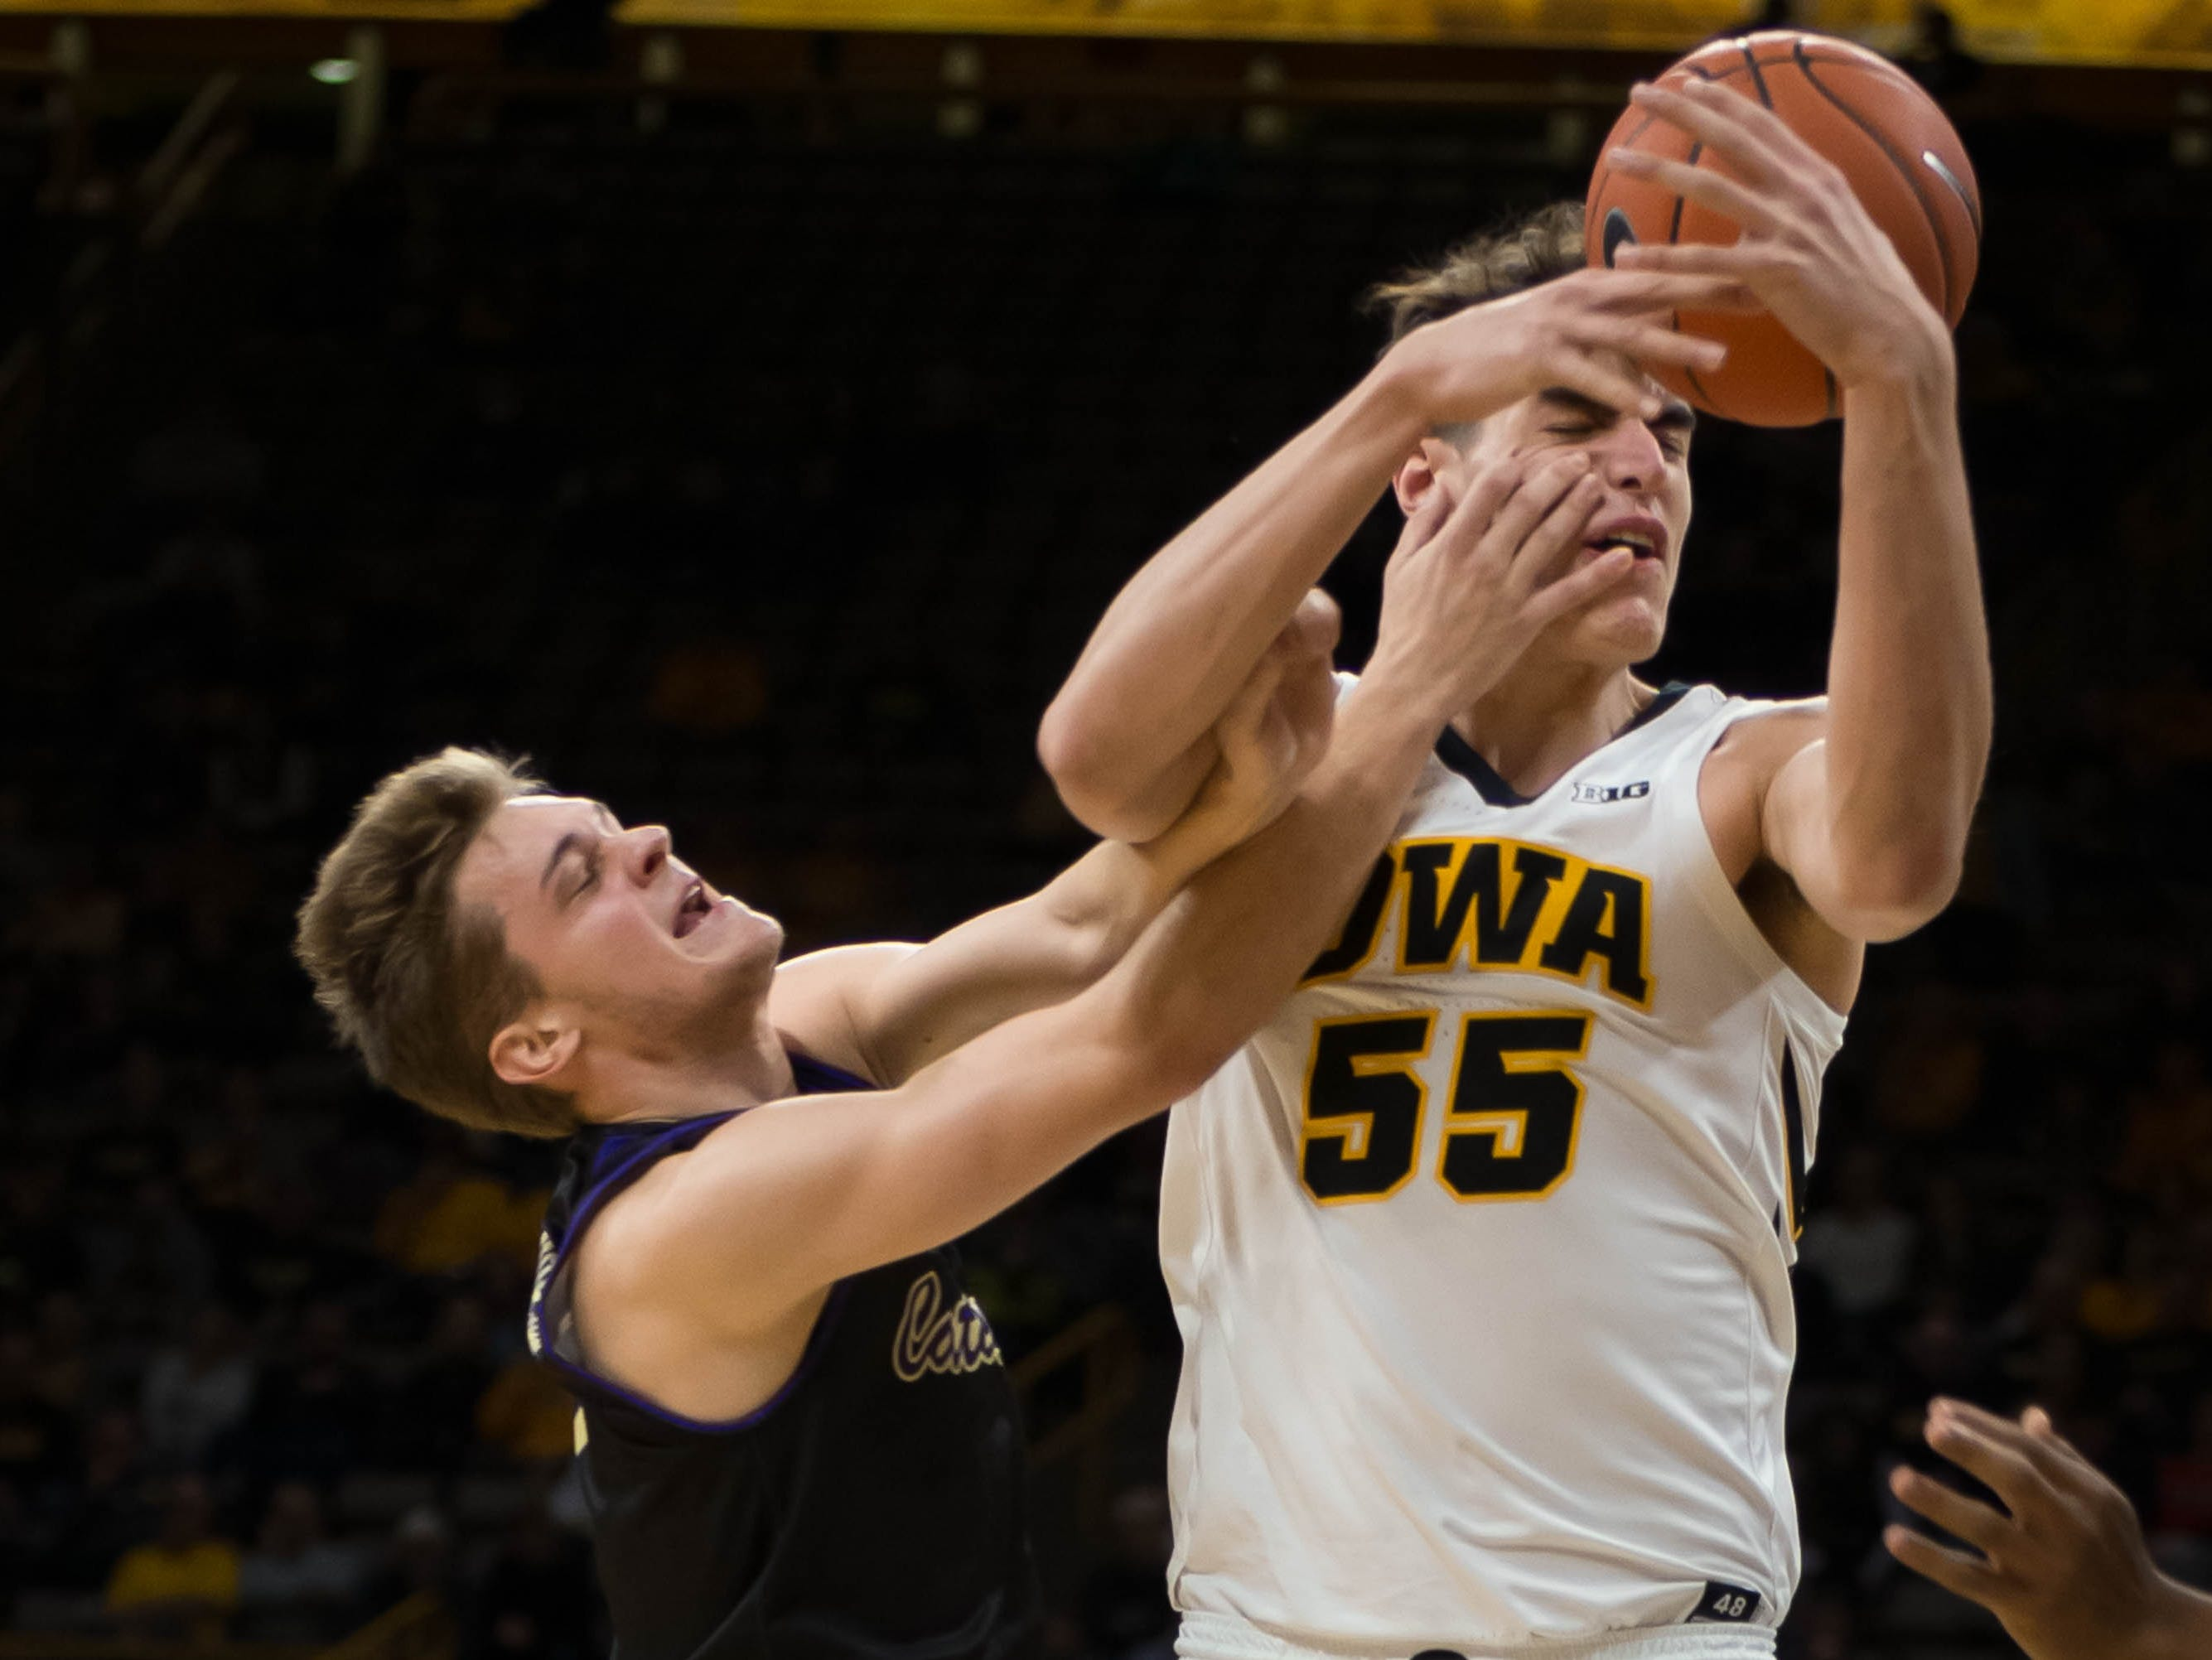 Western Carolina sophomore guard Matt Halvorsen (2) grabs at Iowa sophomore forward Luka Garza (55) in the first half at Carver Hawkeye Arena in Iowa City on Tuesday, Dec. 18, 2018.